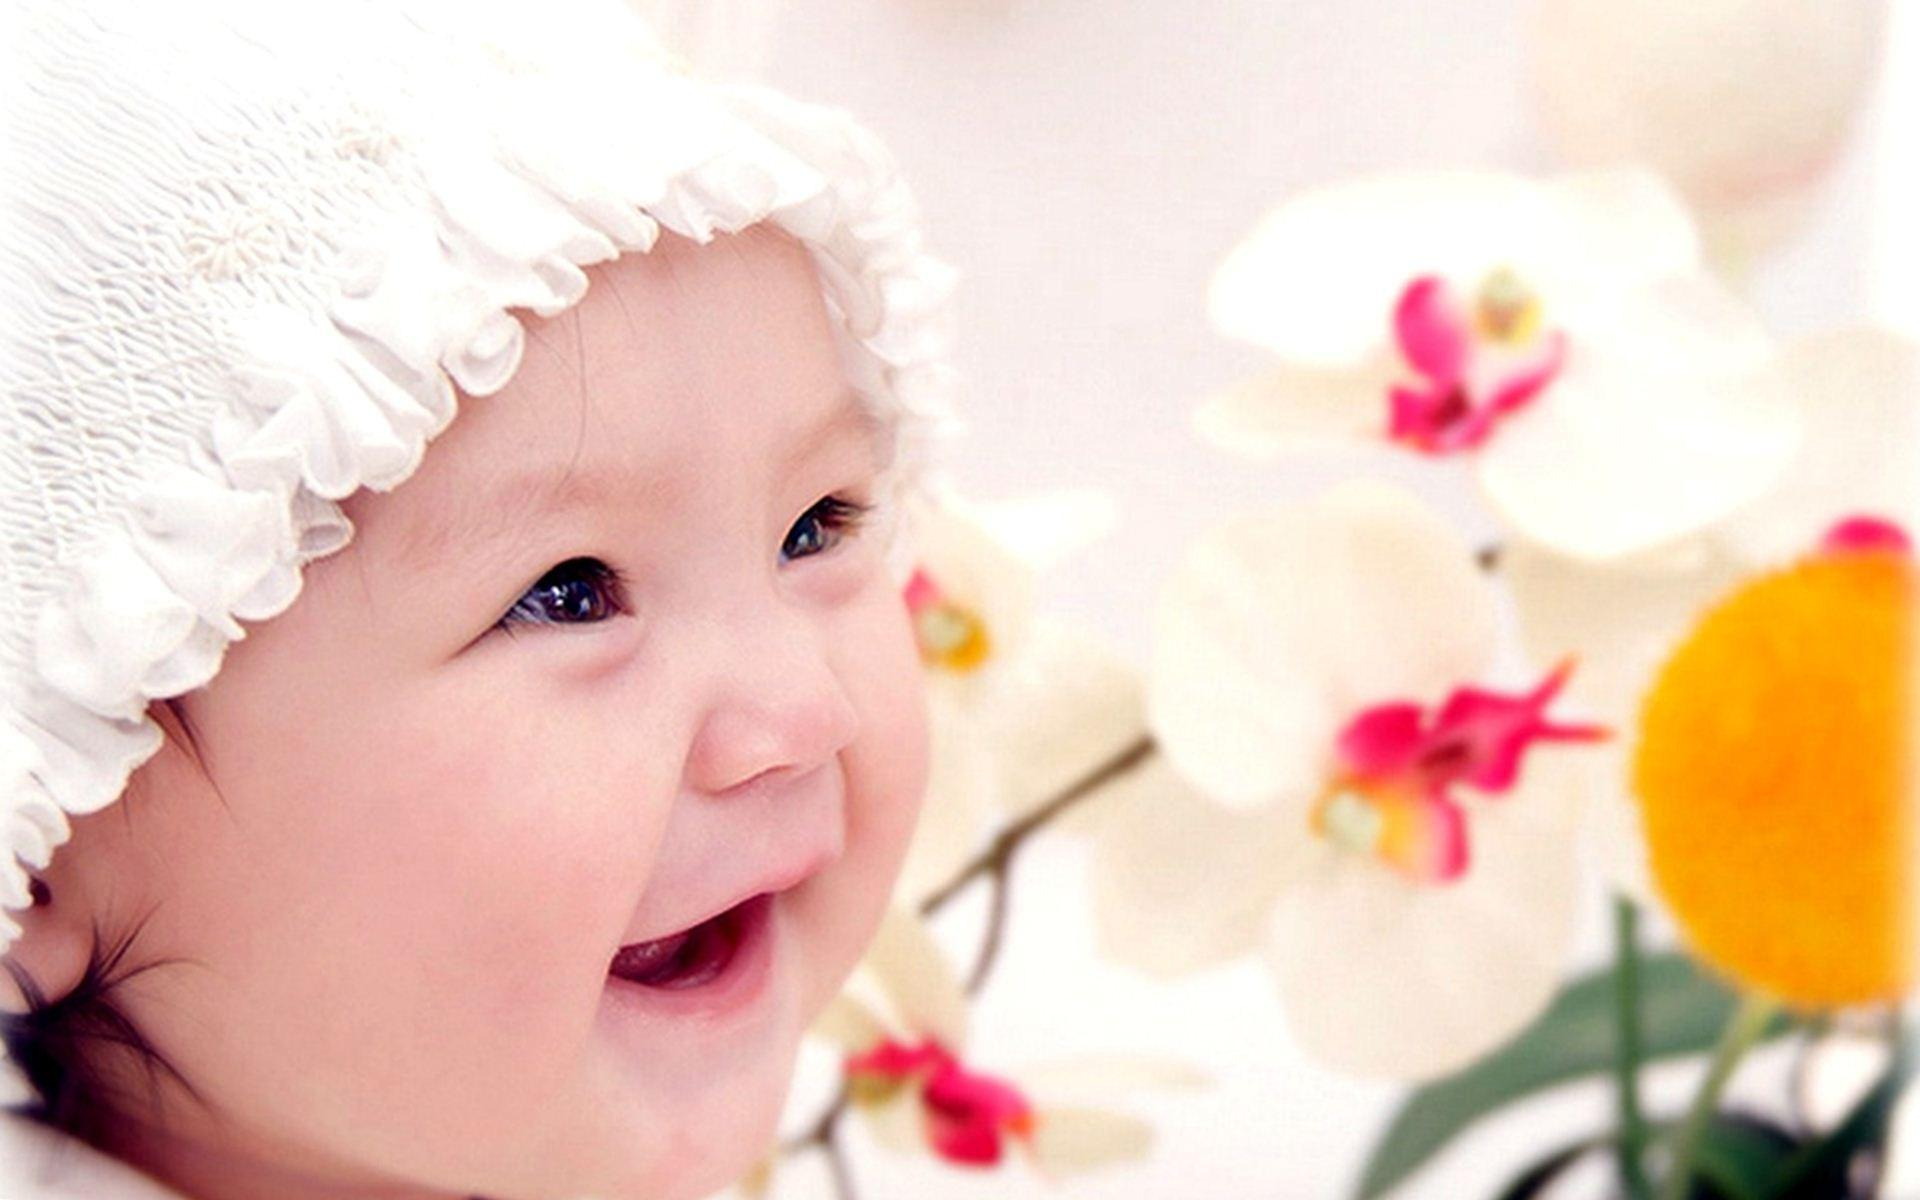 Beautiful Baby Image HD Wallpapers Wallpapers computer